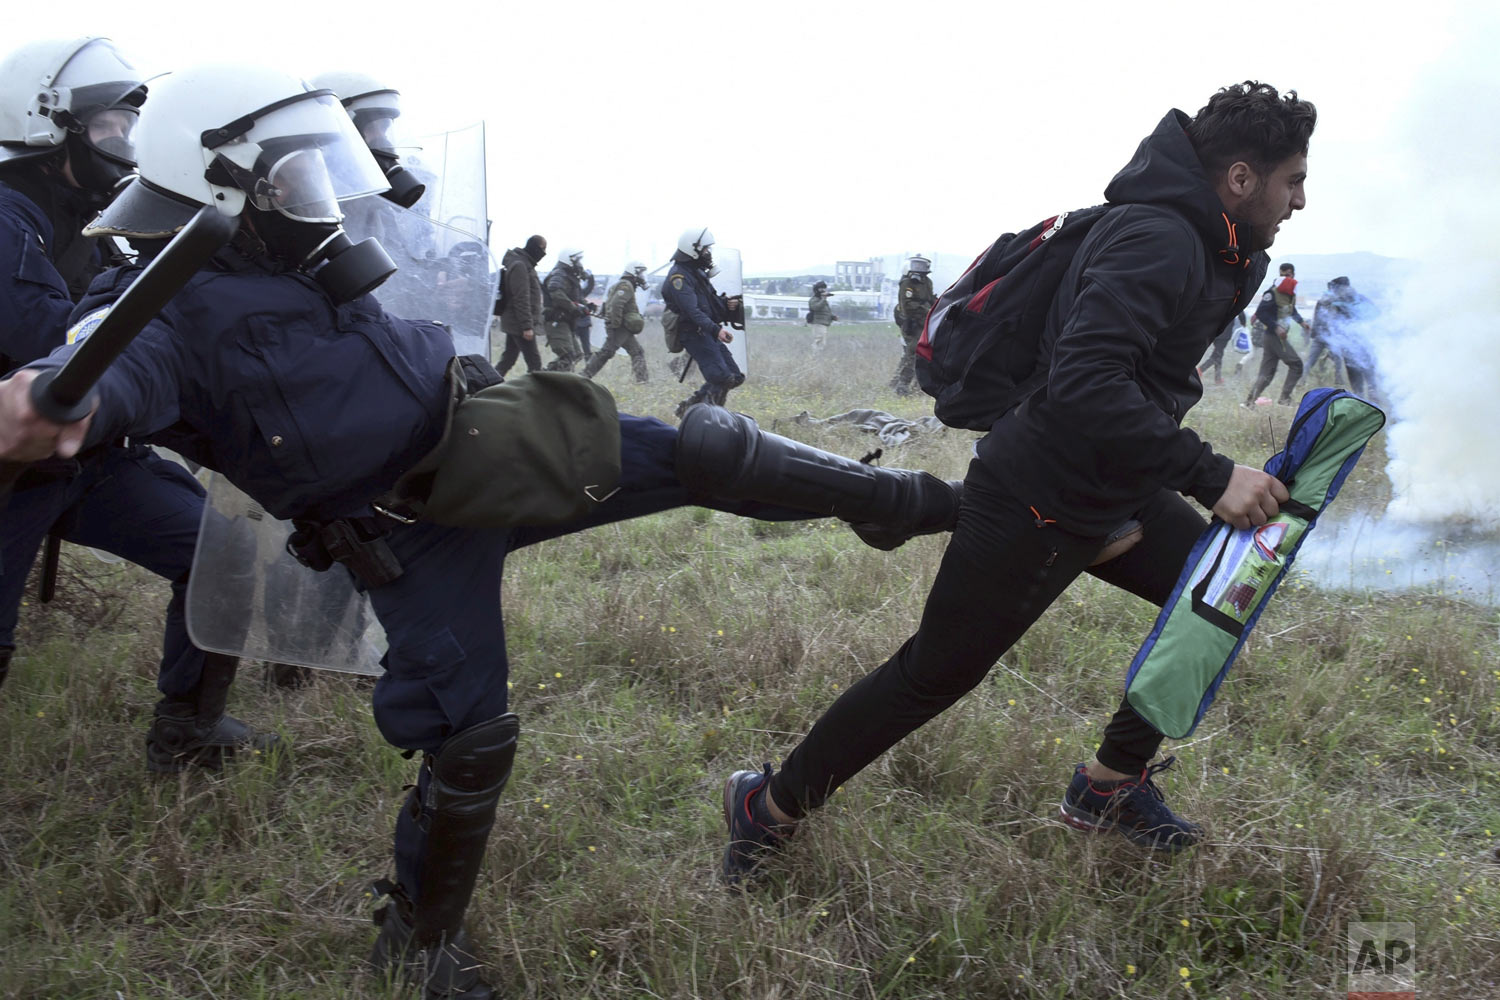 A police officer kicks a protesting migrant during clashes outside a refugee camp in the village of Diavata, west of Thessaloniki, northern Greece, Saturday, April 6, 2019. Clashes between hundreds of protesting migrants and police continued for a third day outside the overcrowded camp, with migrants throwing rocks at police and the police responding with tear gas and stun grenades. (AP Photo/Giannis Papanikos)